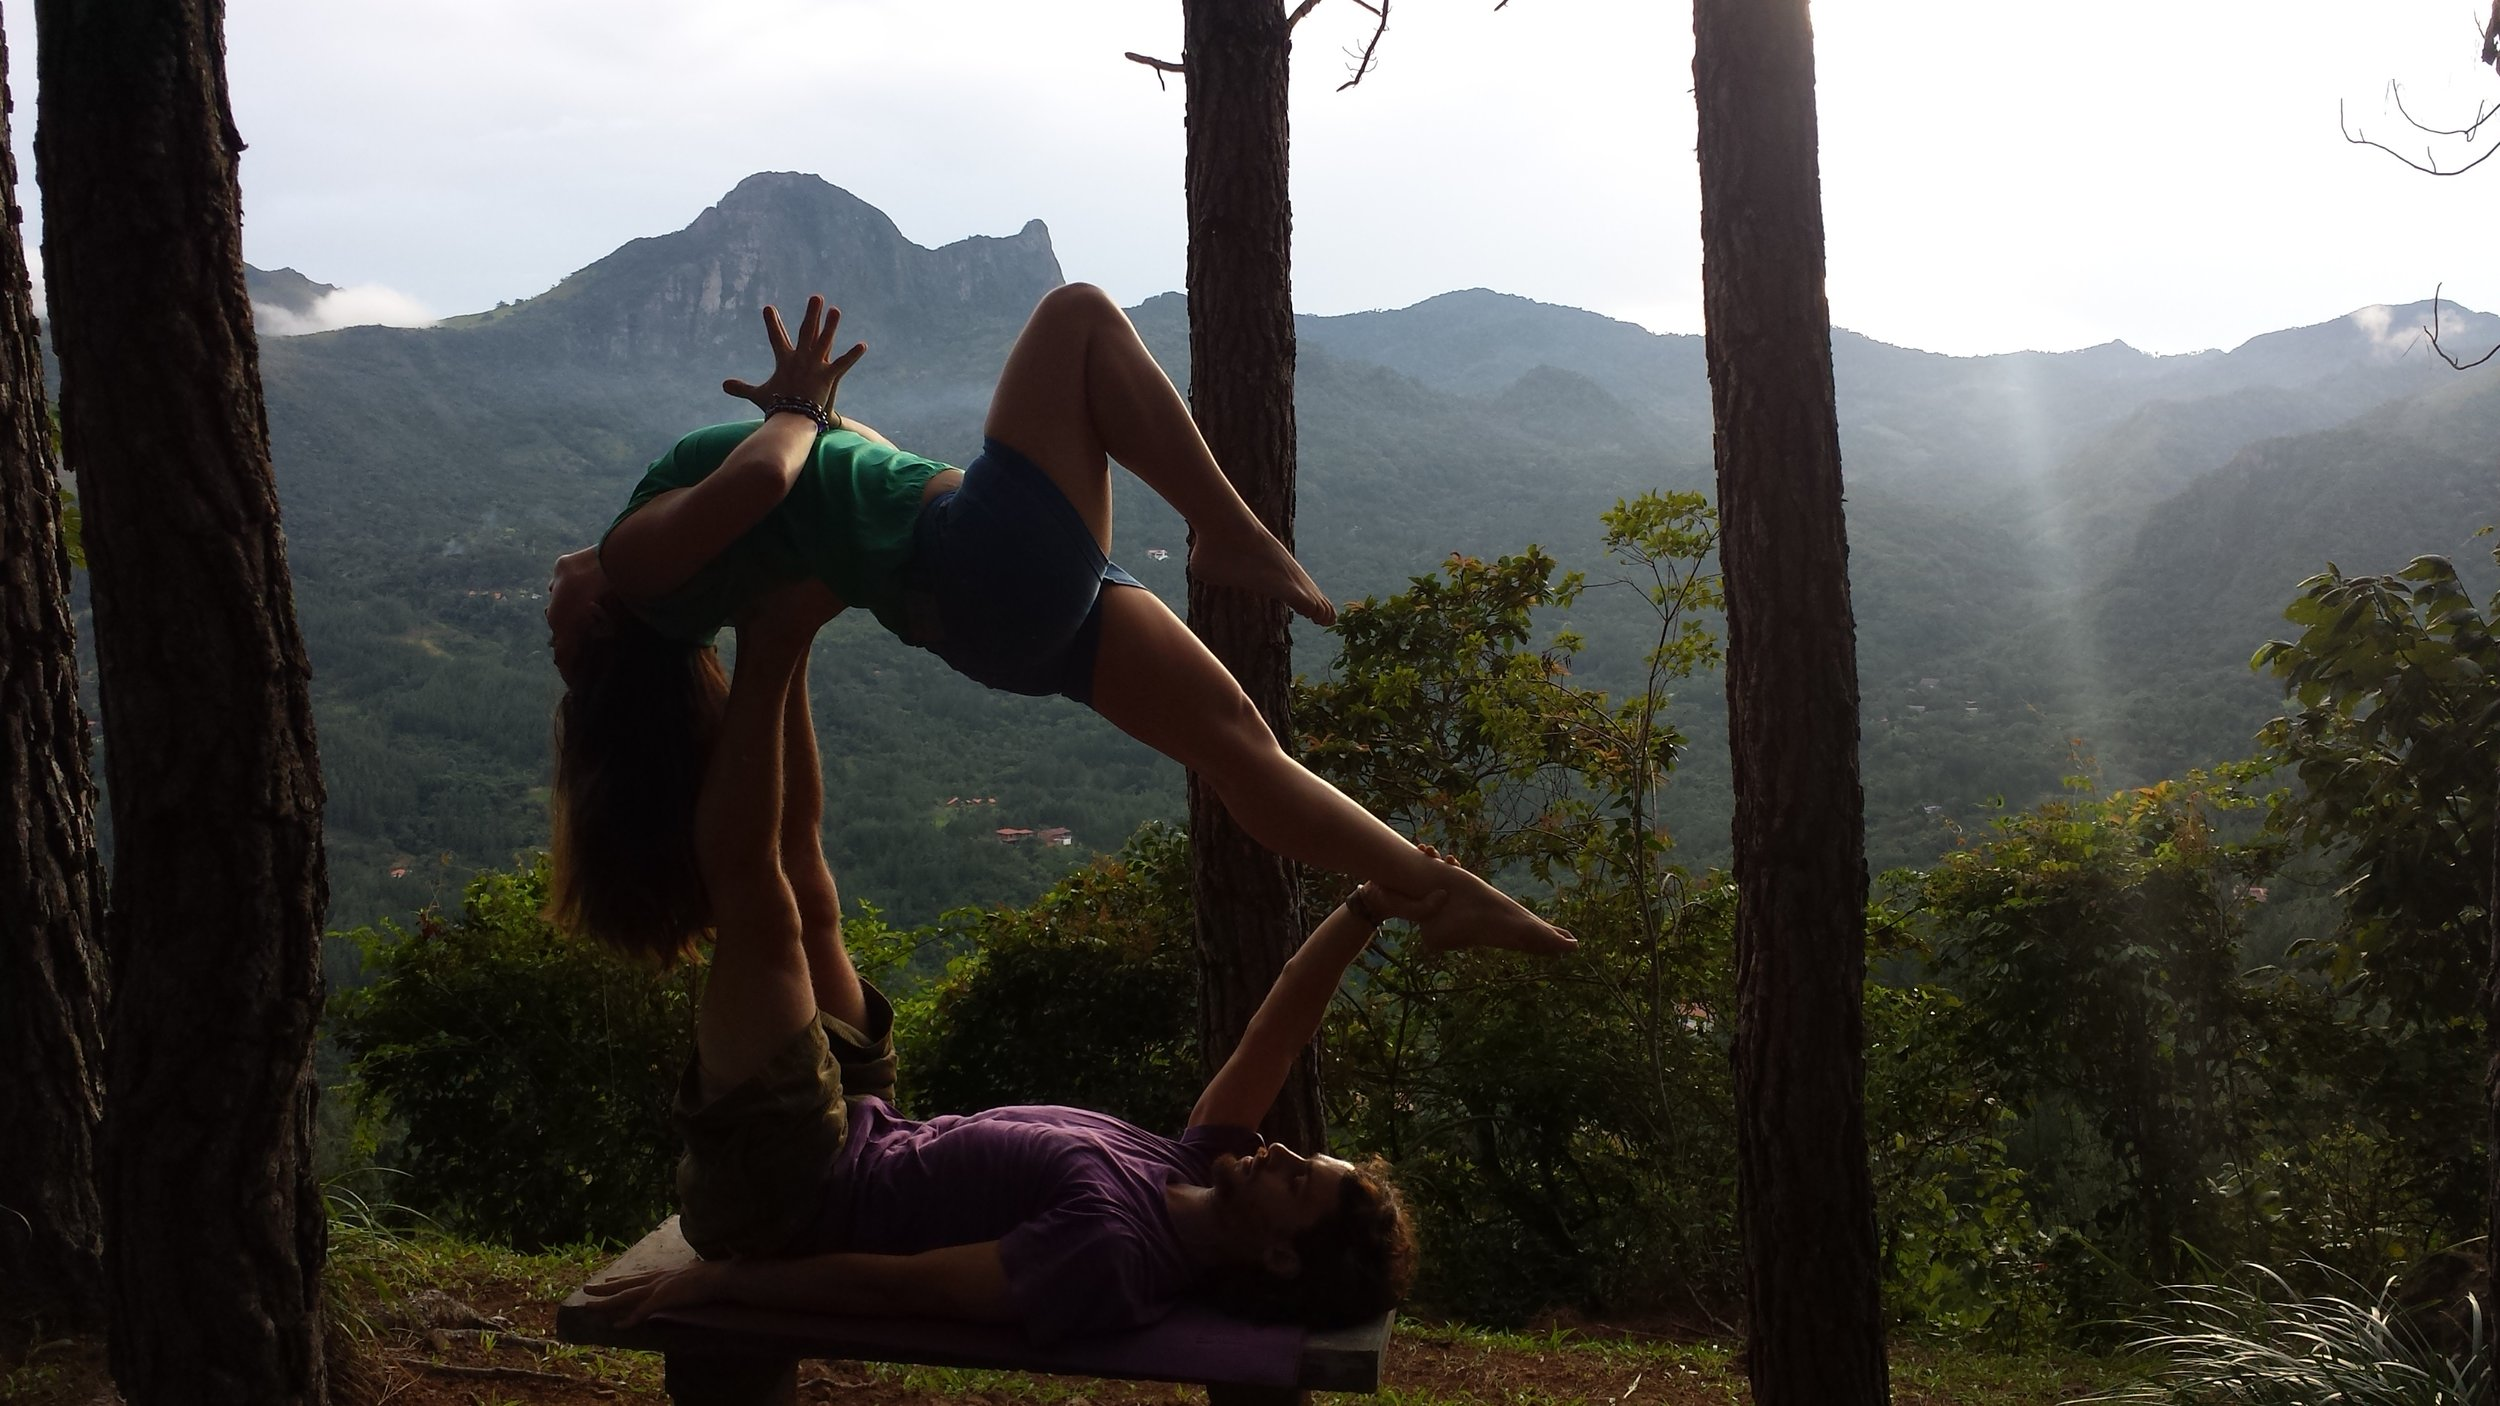 AcroYoga in the Woods